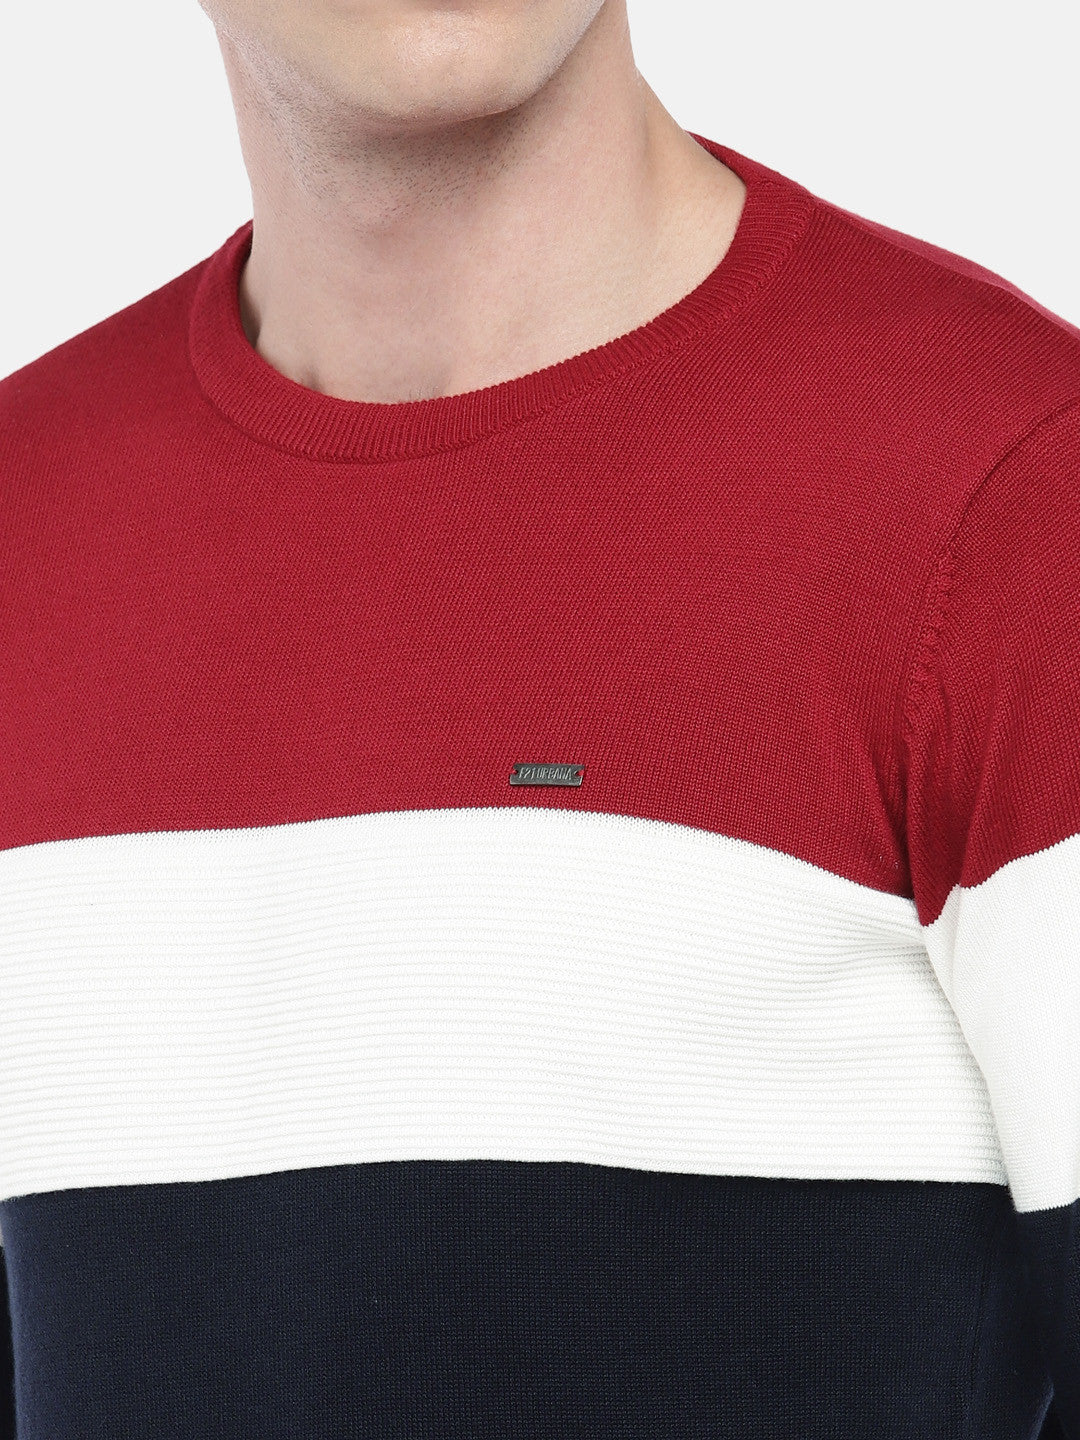 Navy Blue & Red Colourblocked Sweater-5